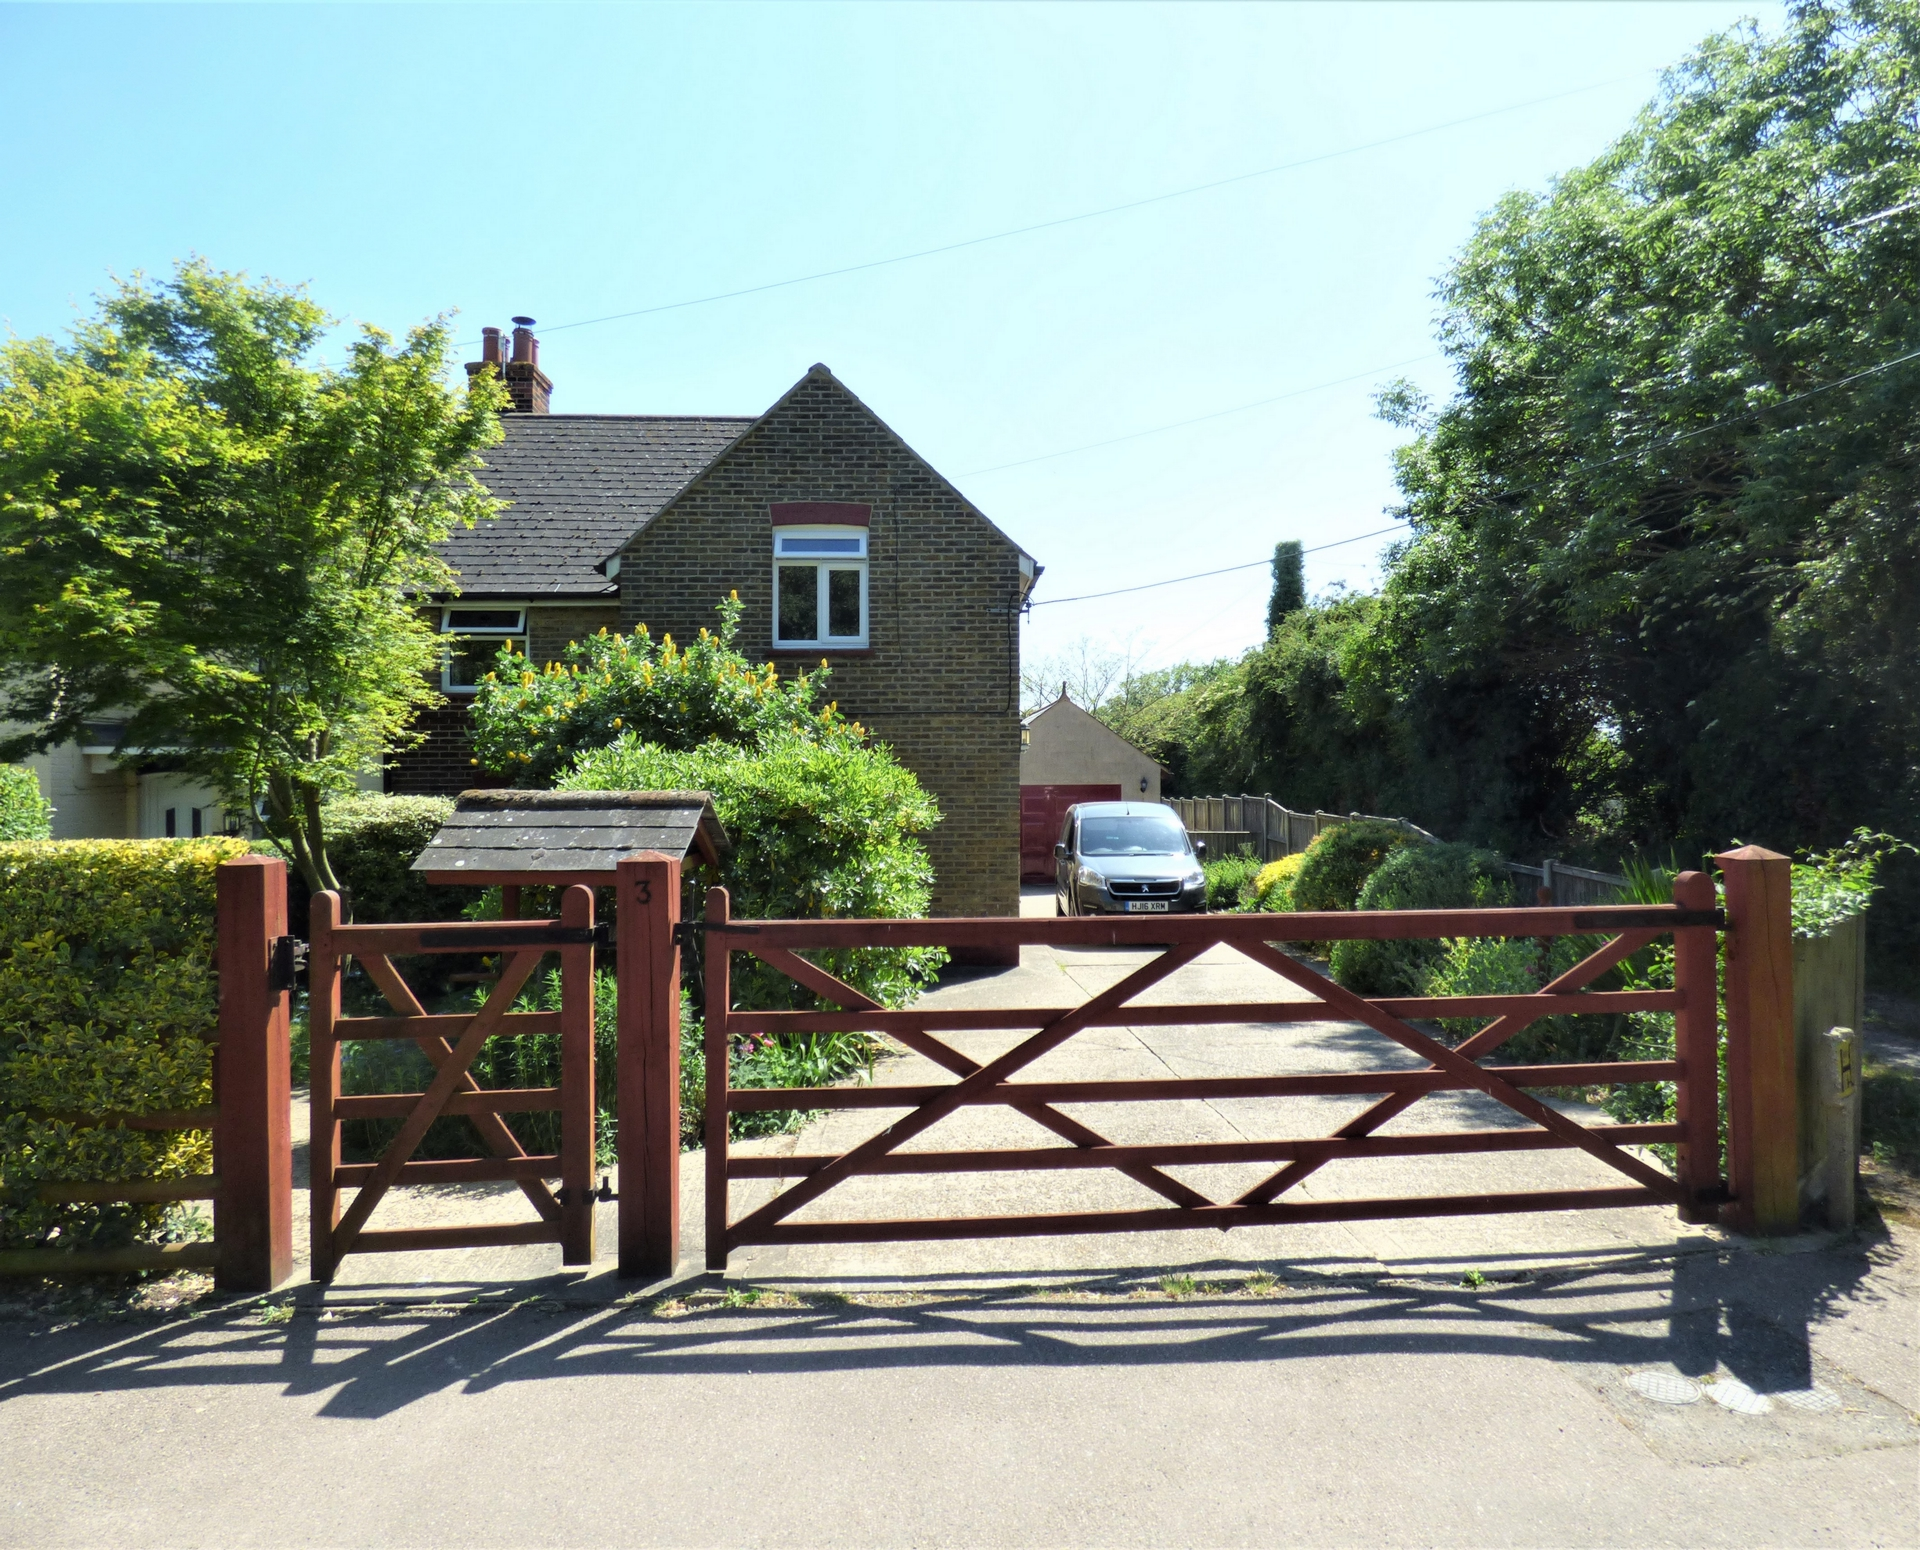 3 bed semi-detached house for sale in Spratling Street, CT12